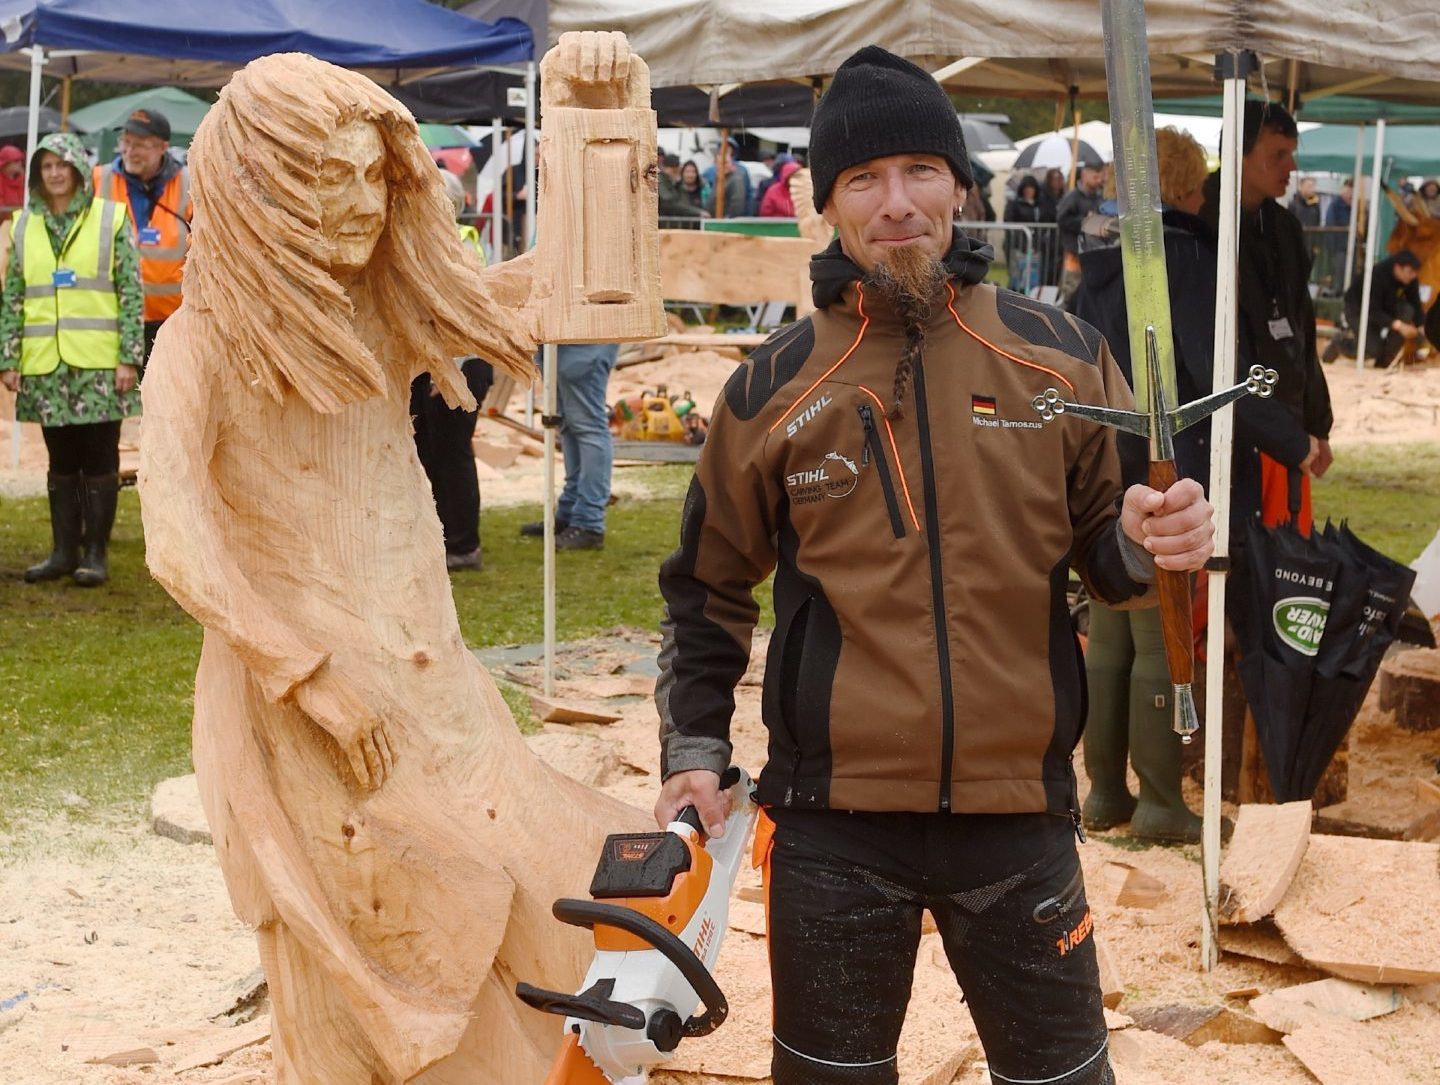 Michael Tamoszus of Germany with his creation 'Lady with Light' as he won the competition for the second year. Pictures and video by Sandy McCook